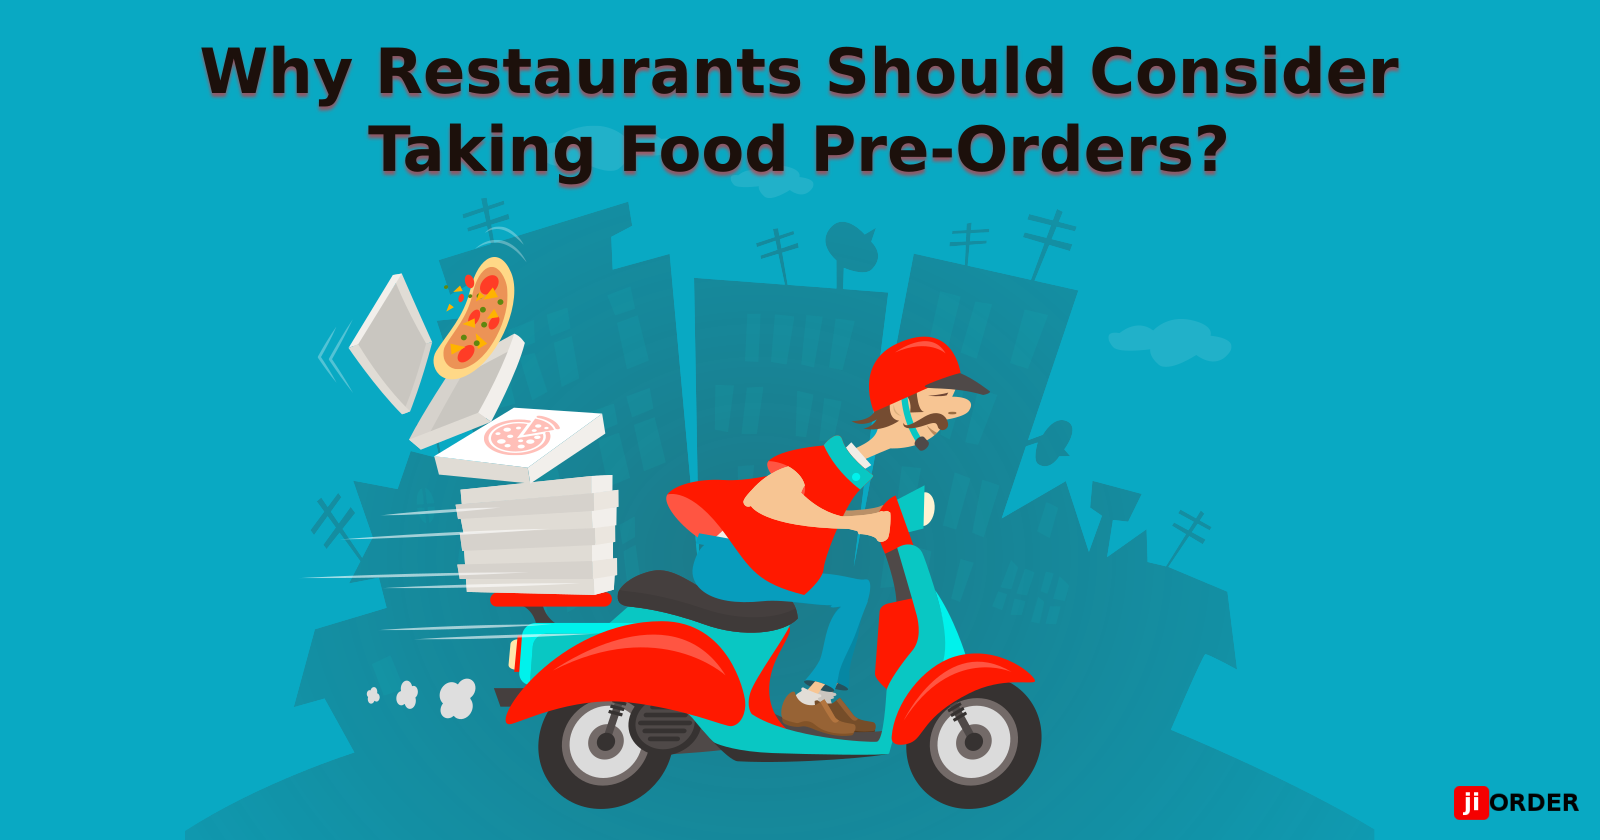 Why Restaurants Should Consider Taking Food Pre-Orders?